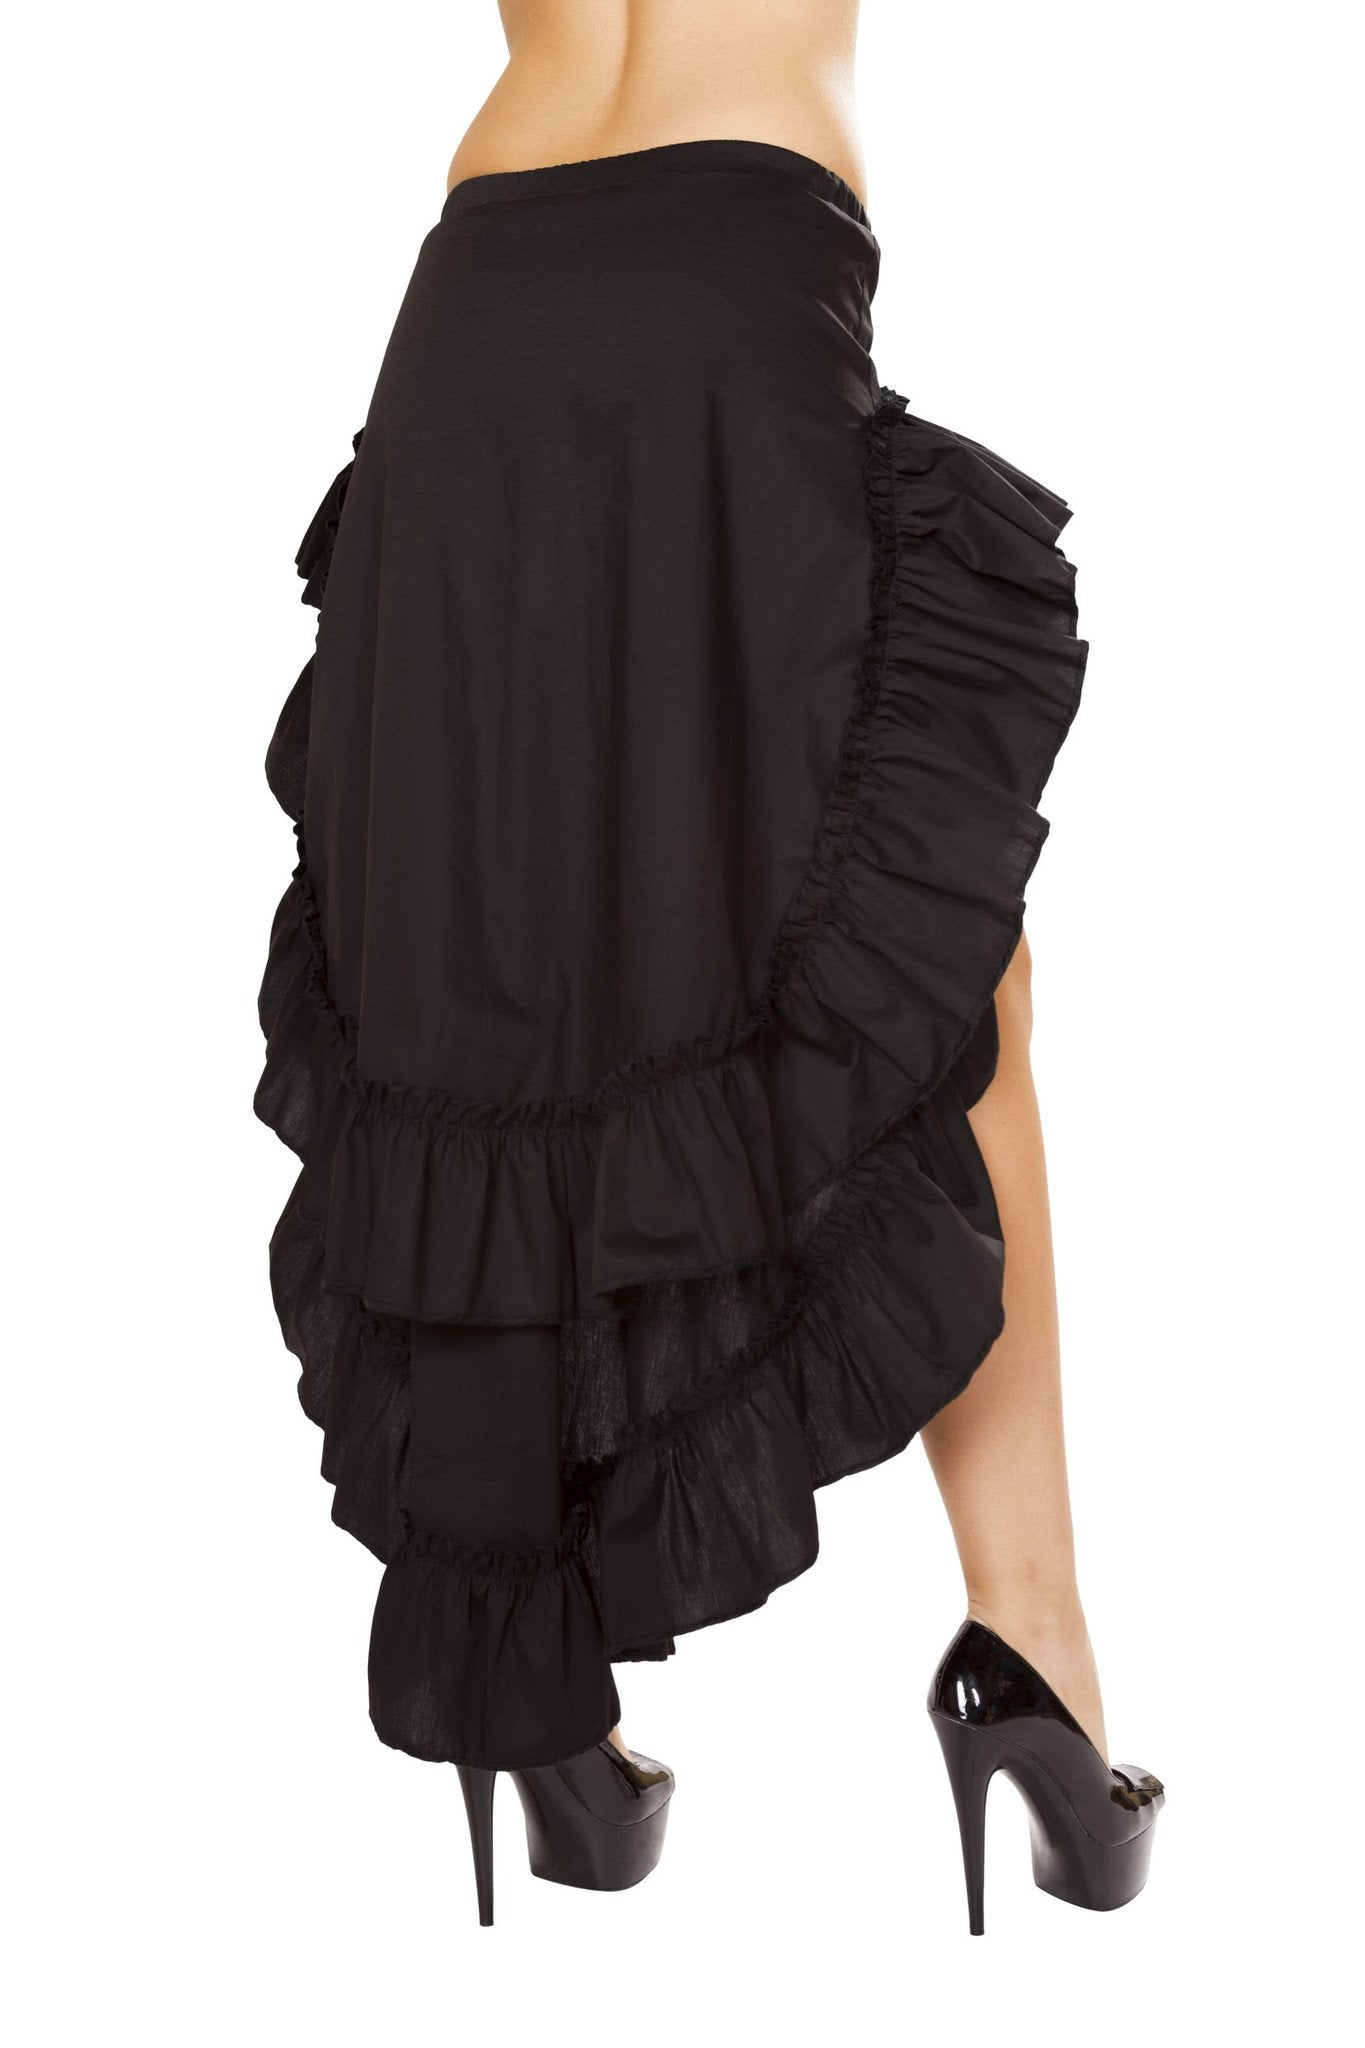 Tiered Ruffle Skirt - PlaythingsMiami